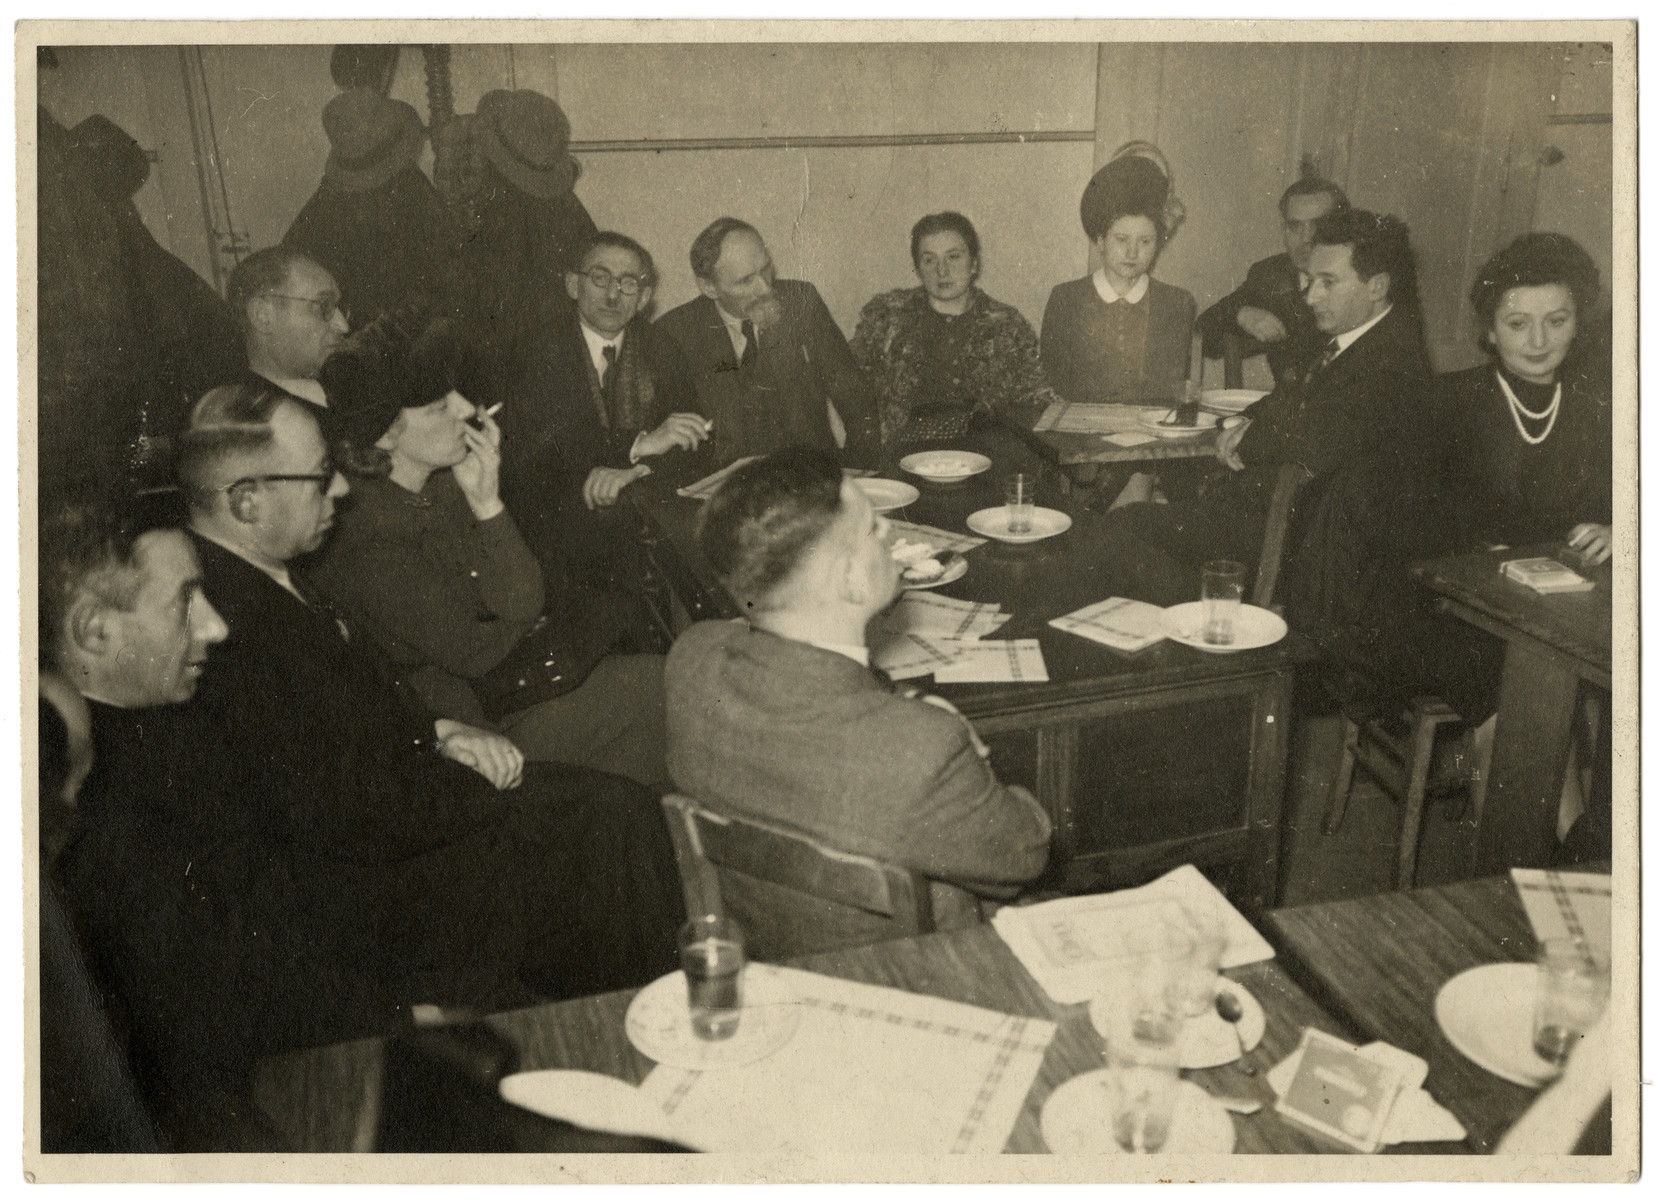 Meeting of a group of Belgian Jews.  [It is unclear if this is wartime or postwar.]  Among those pictured are Yitzchak Kubovitsky (third from left), Israel Tabakman (fifth from left facing camera with glasses), Nahum Pomerantz (third from right), Izak Szattan (second from right) and Fela Perelman at the far right.